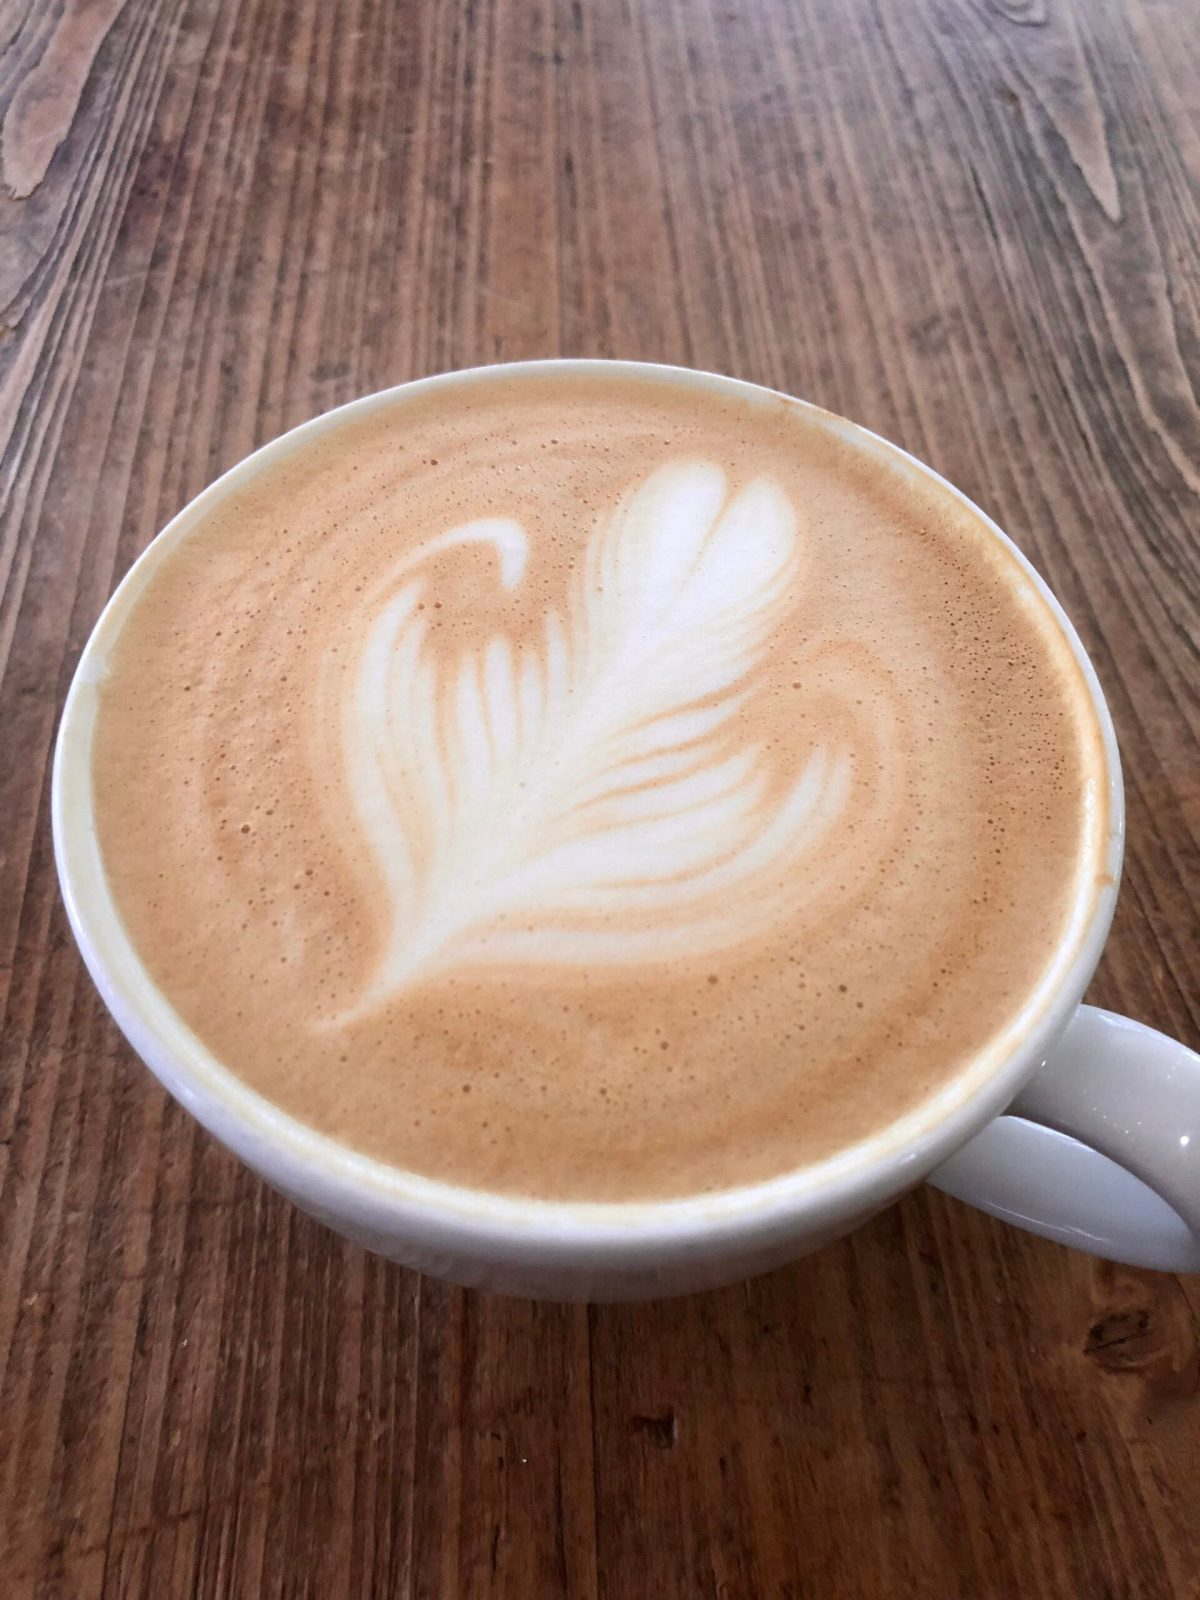 Frothy Monkey | Nashville, TN #nashvillecoffee #bestcoffeeinnashville #whattodoin12south #12southnashville #frothymonkeynashville #nashvillevacation